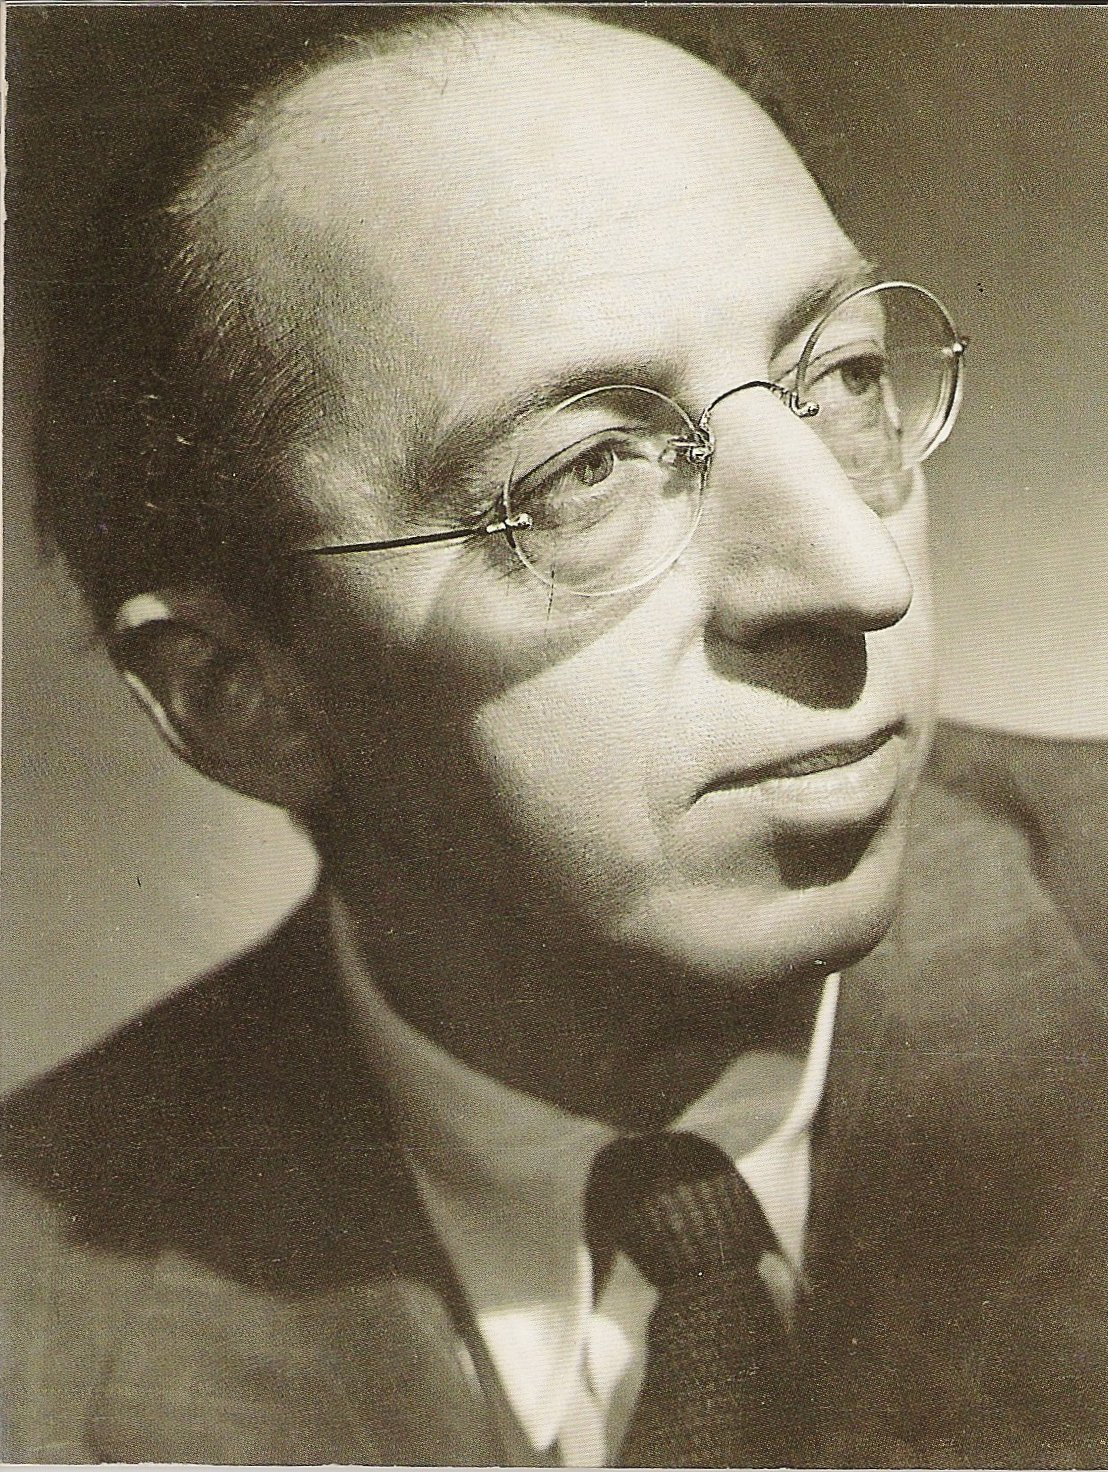 Aaron Copland's Songs | Stream Online Music Songs | Listen ...